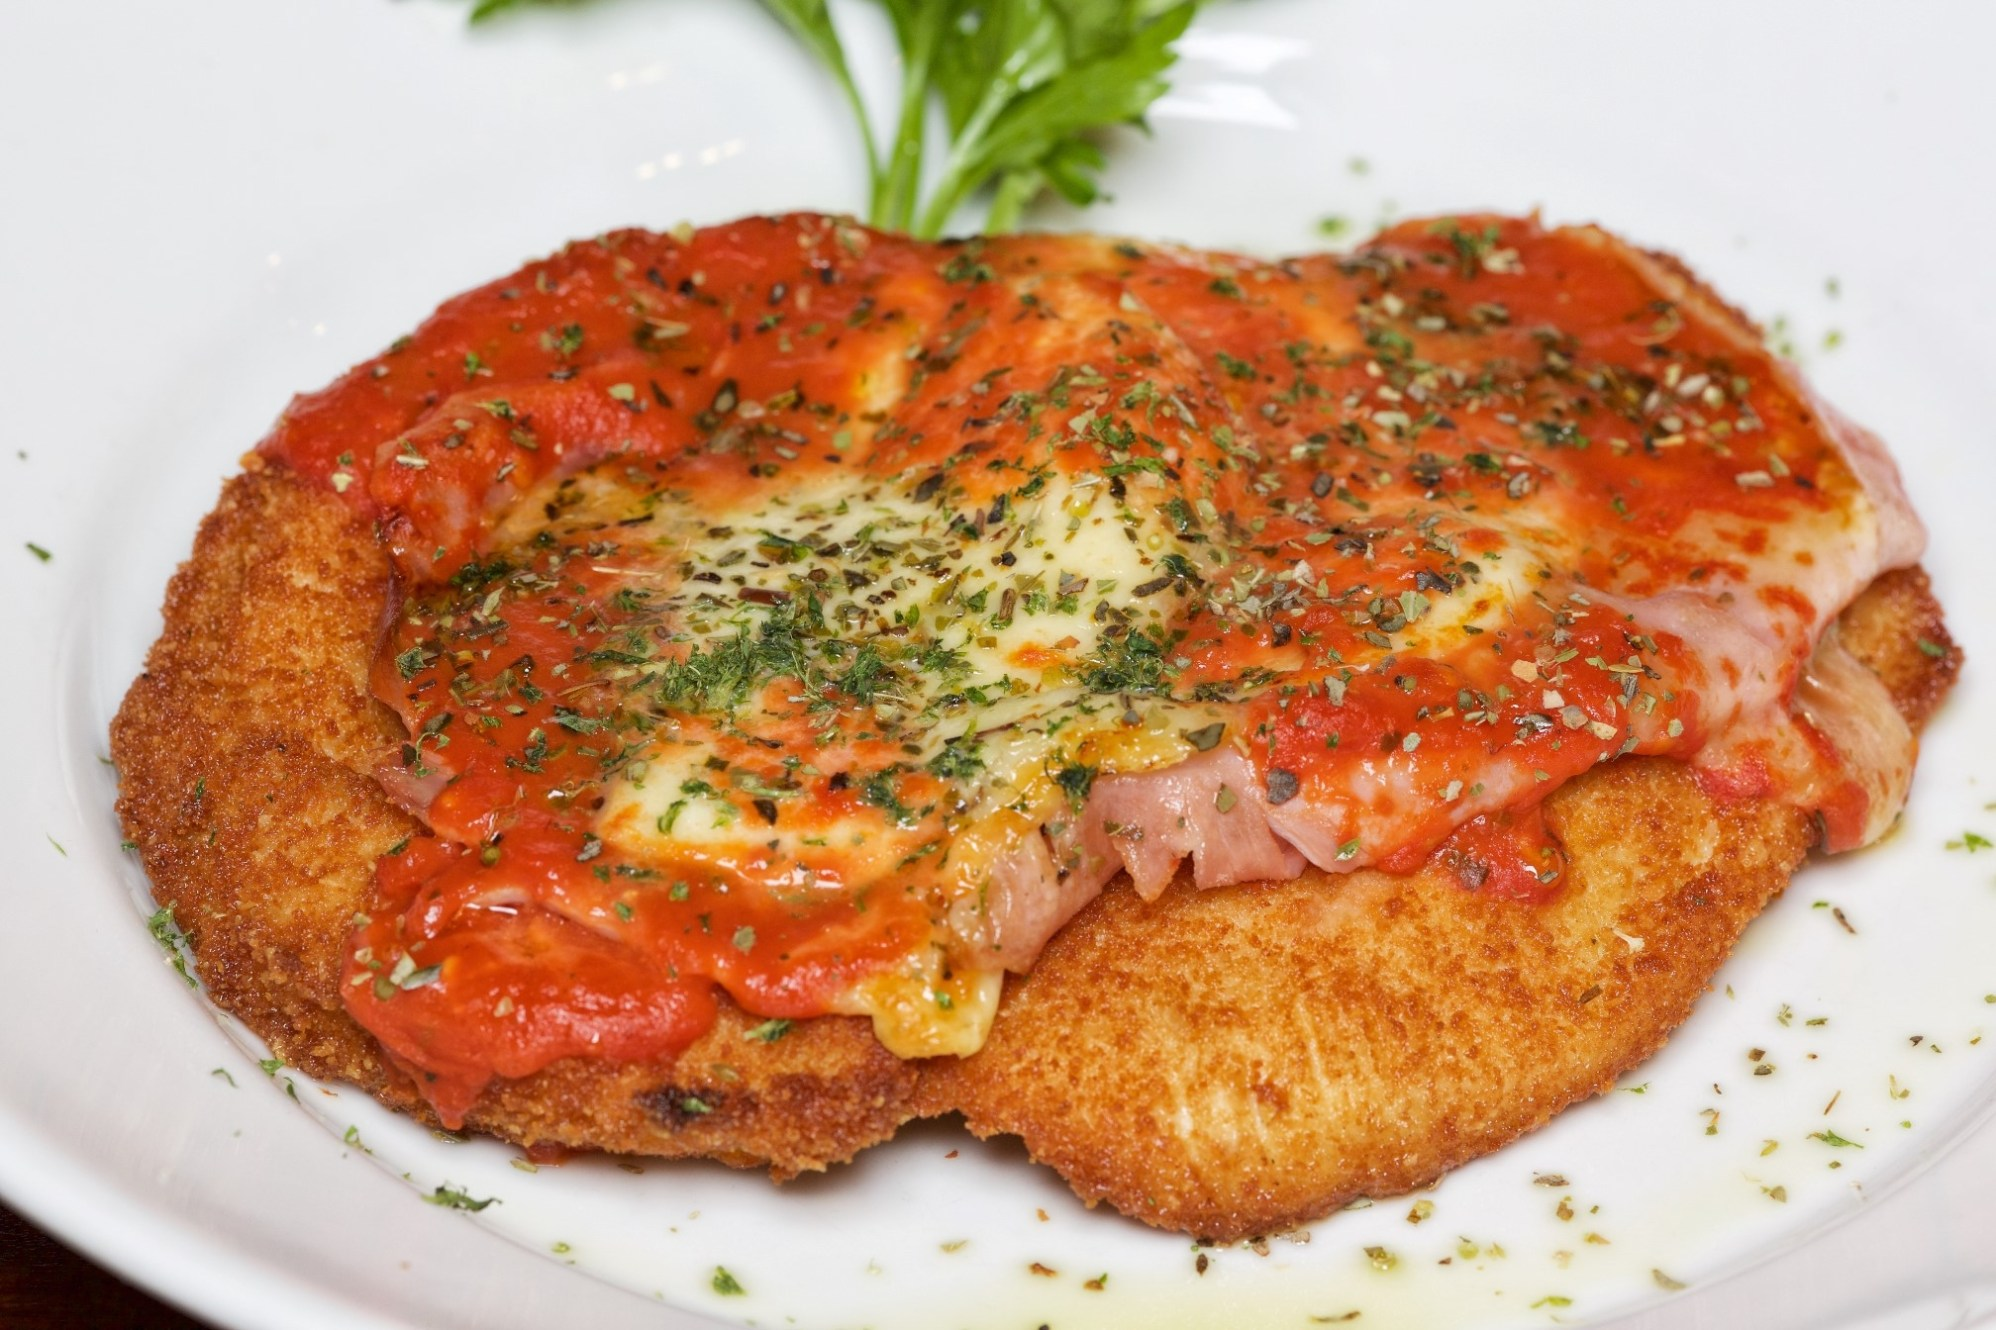 123 ITALIAN FINEST CUISINE (5) MEATS AND CHICKEN VEAL LIVER 008909 (Custom)